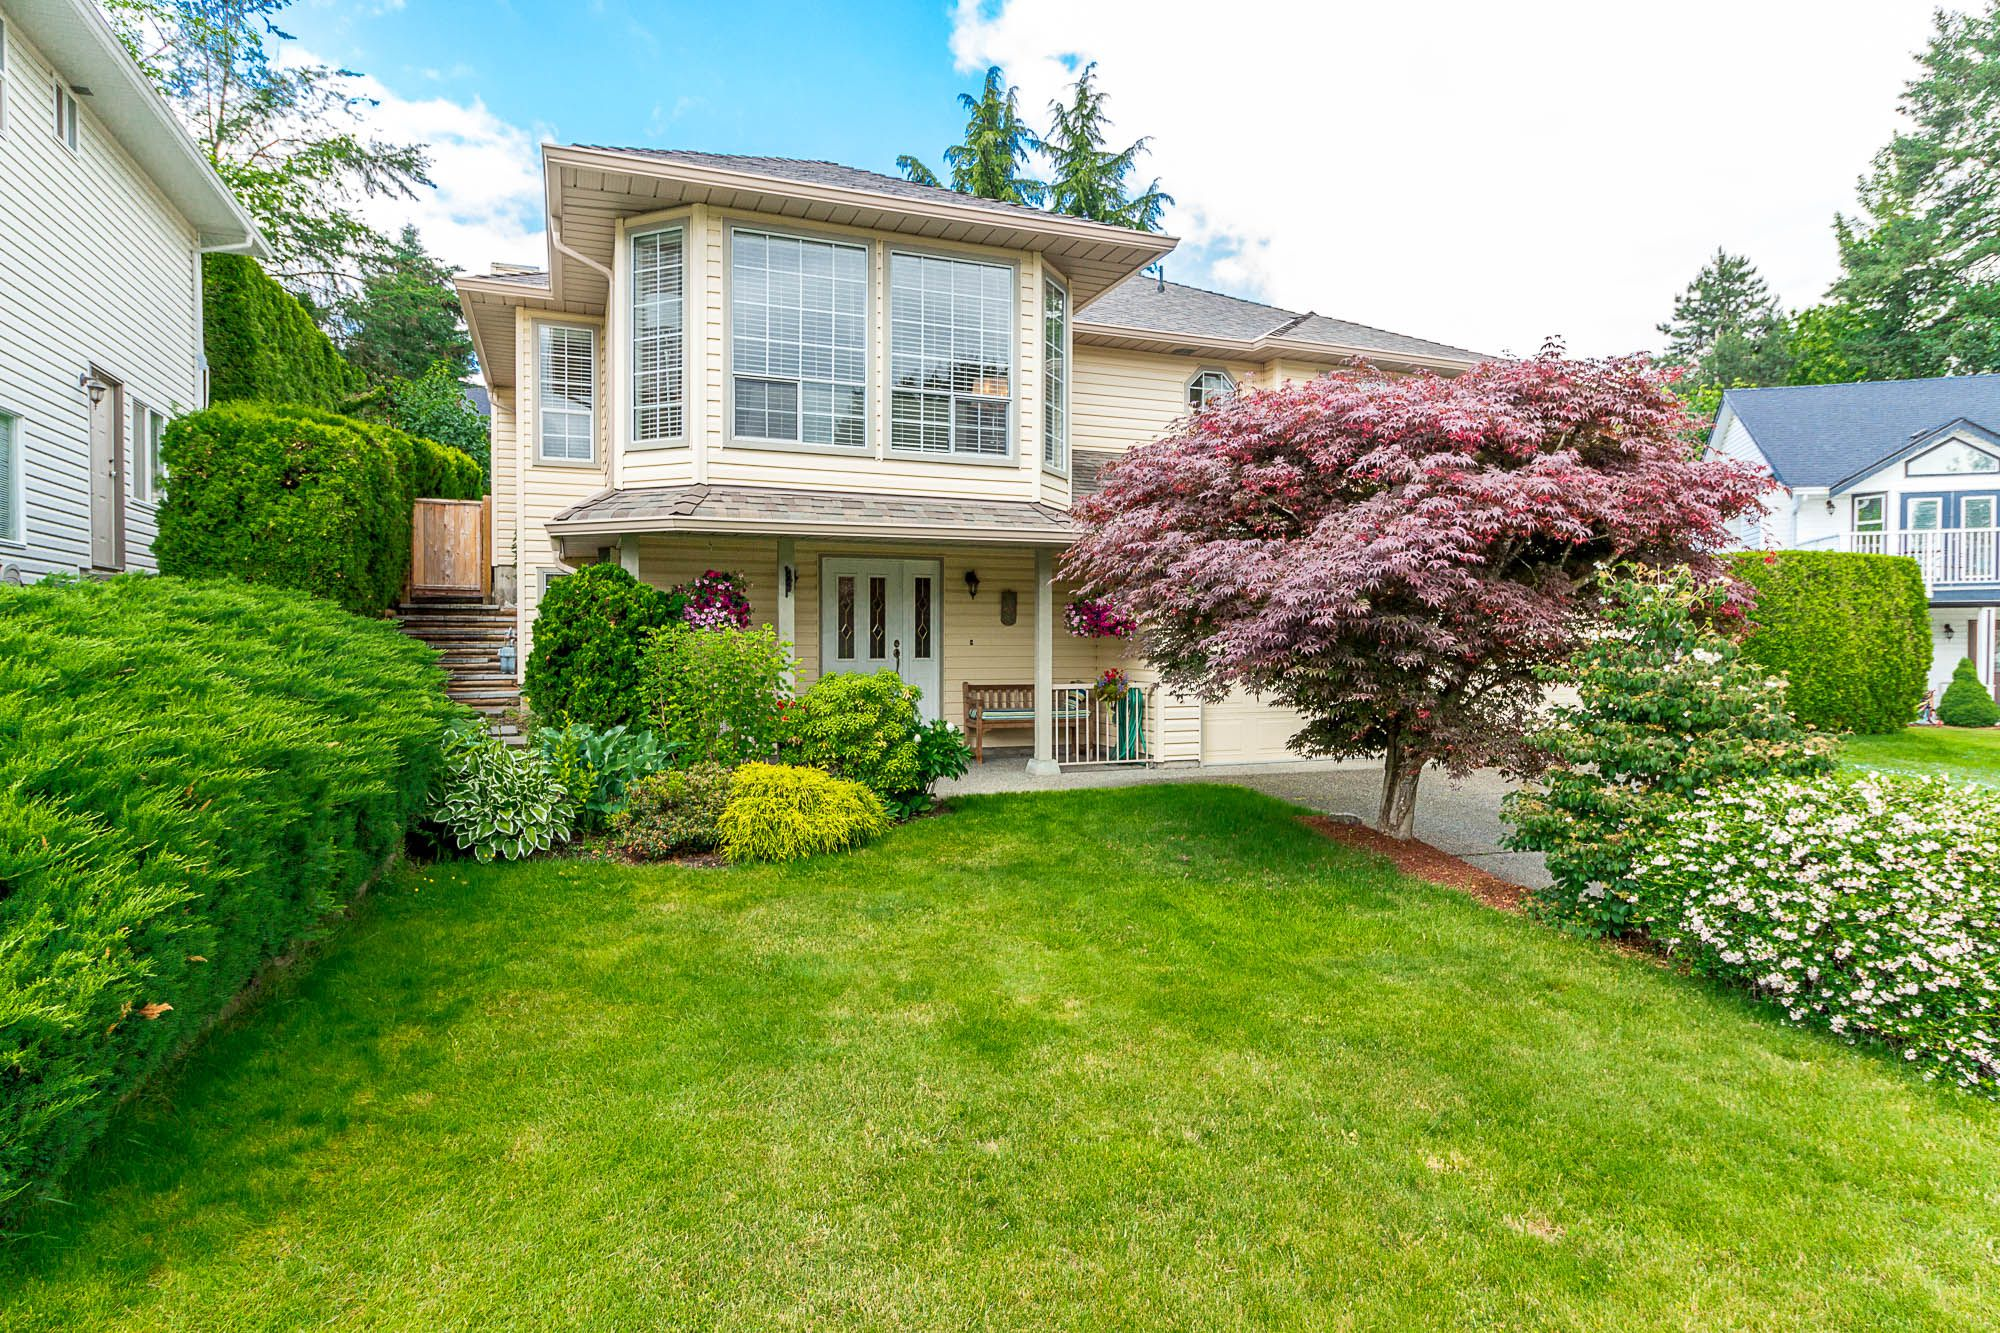 Main Photo: 35983 Eaglecrest Place in Abbotsford: Abbotsford East House for sale : MLS®# R2278175